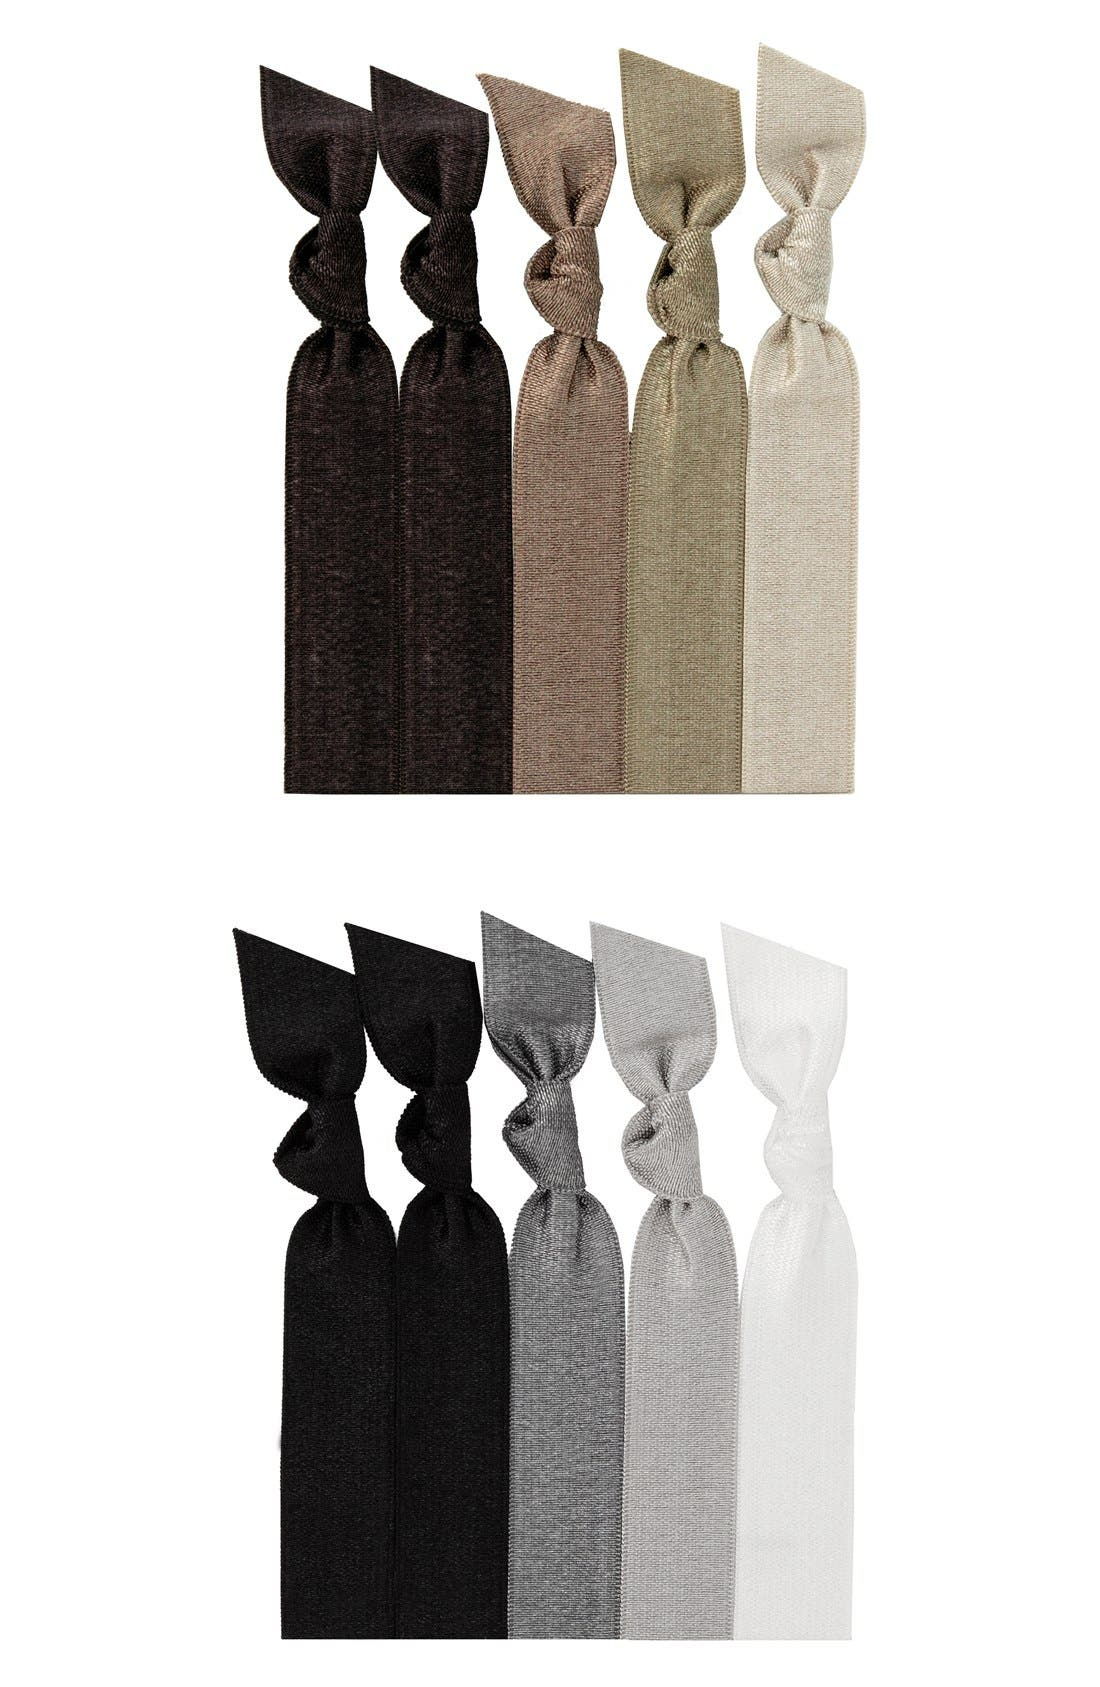 Alternate Image 1 Selected - Emi-Jay Ombré Hair Ties (10-Pack) ($20 Value)